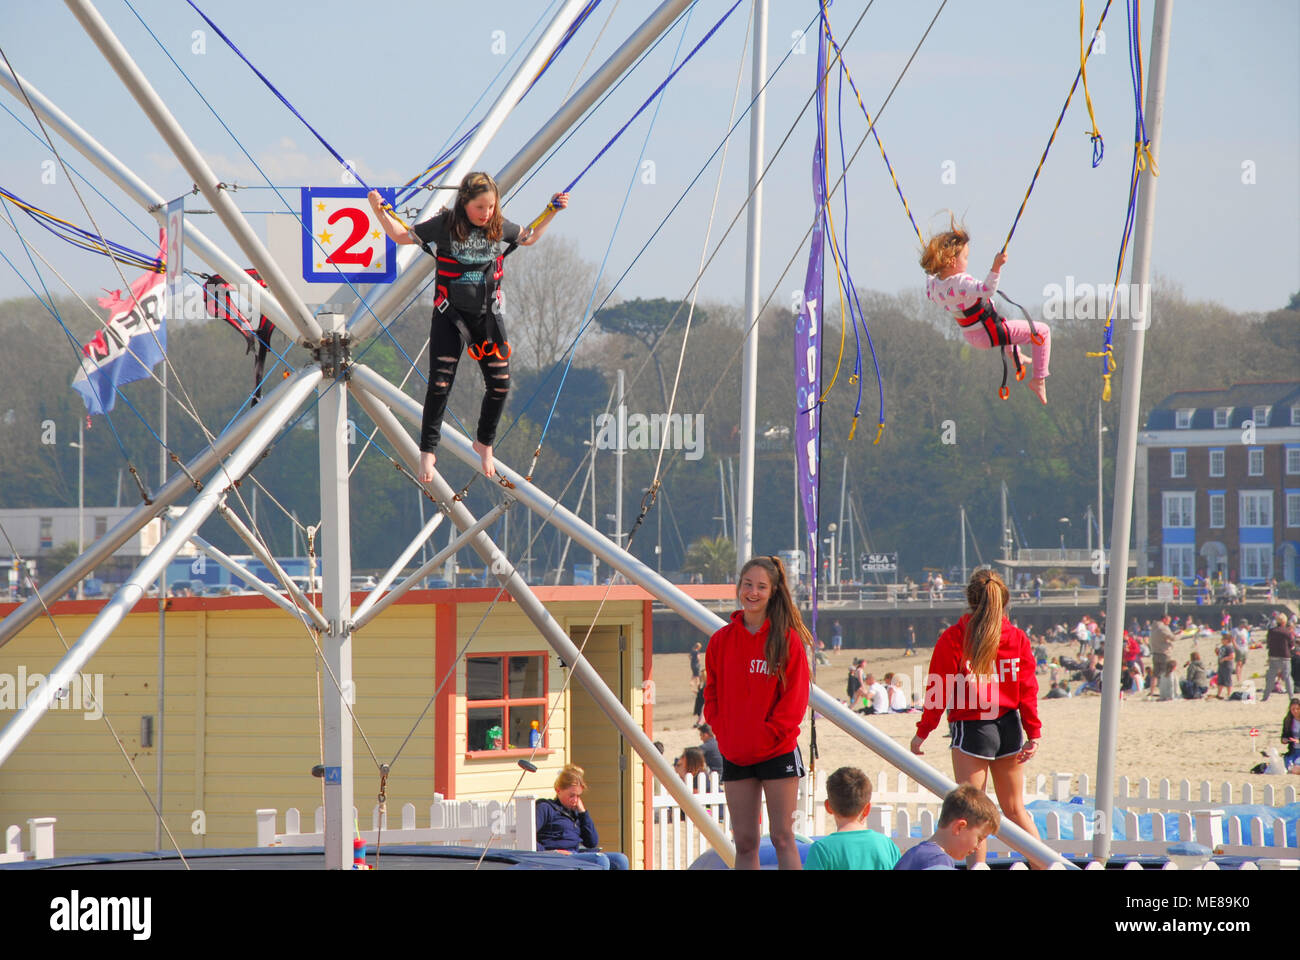 Weymouth, Dorset. 21st April 2018. Children have fun in sunny Weymouth, enjoying an early taste of summer weather Credit: stuart fretwell/Alamy Live News Stock Photo